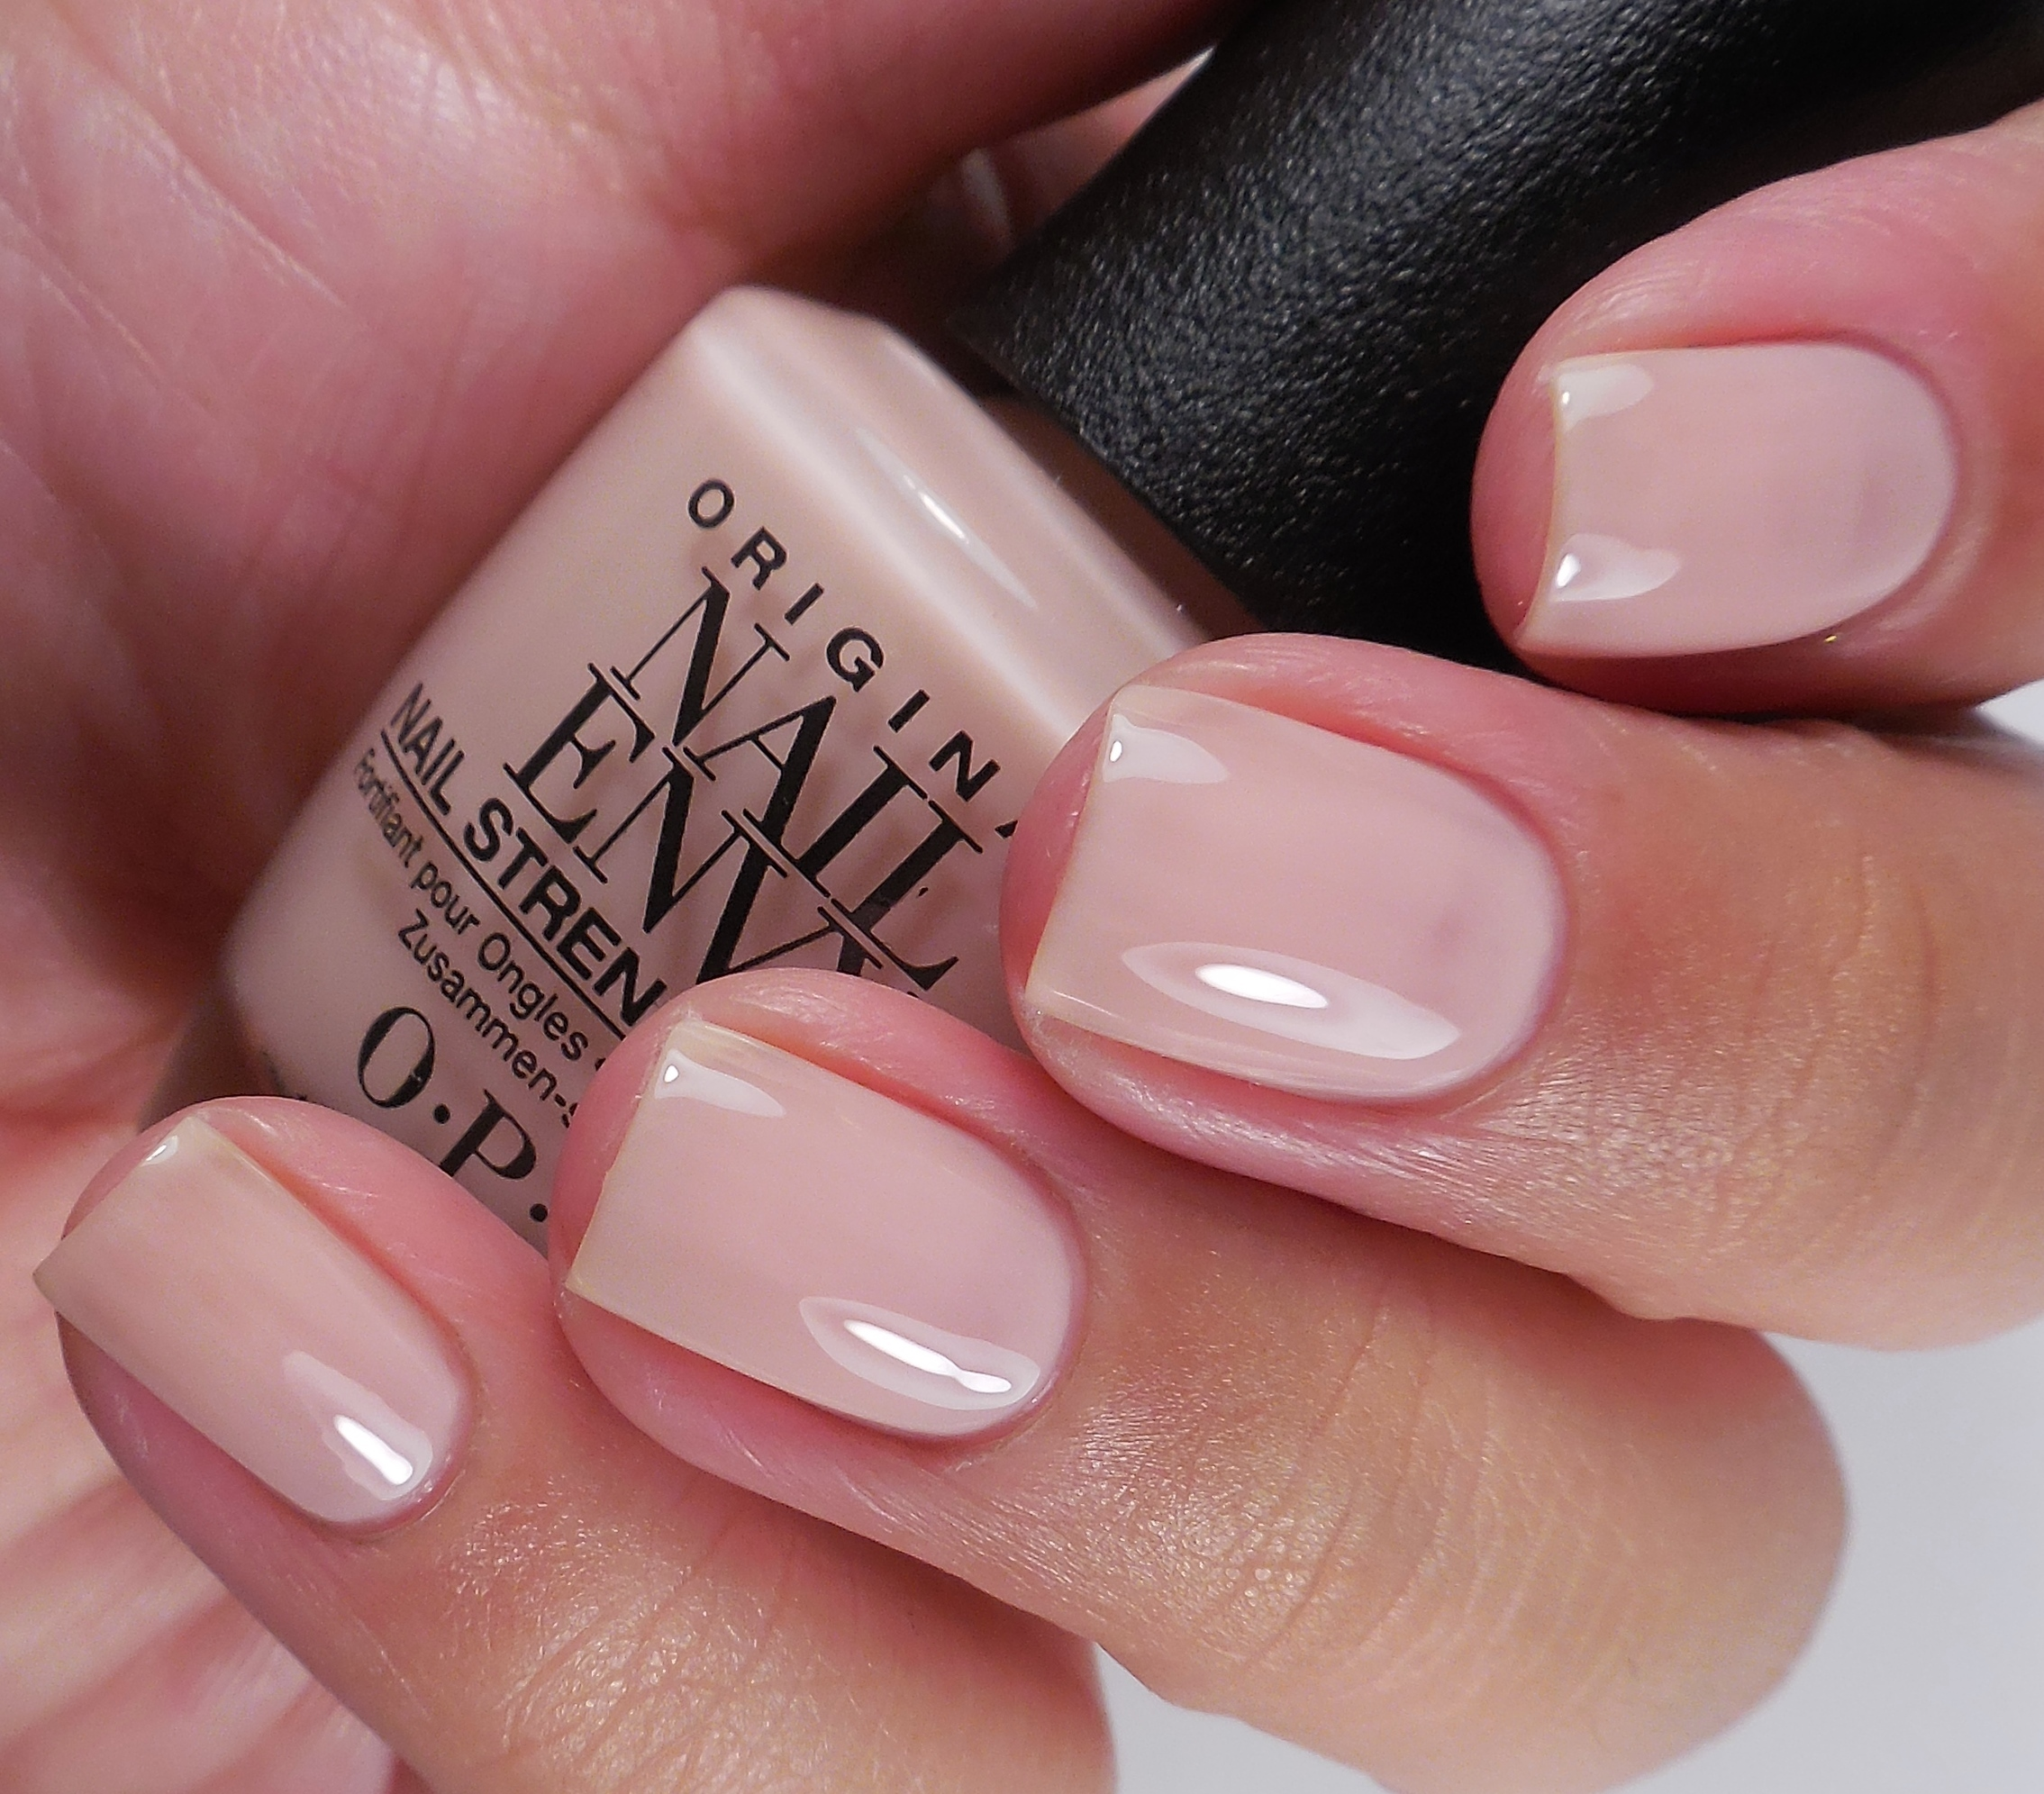 OPI Nail Envy Strength In Color - Giveaway - Of Life and Lacquer